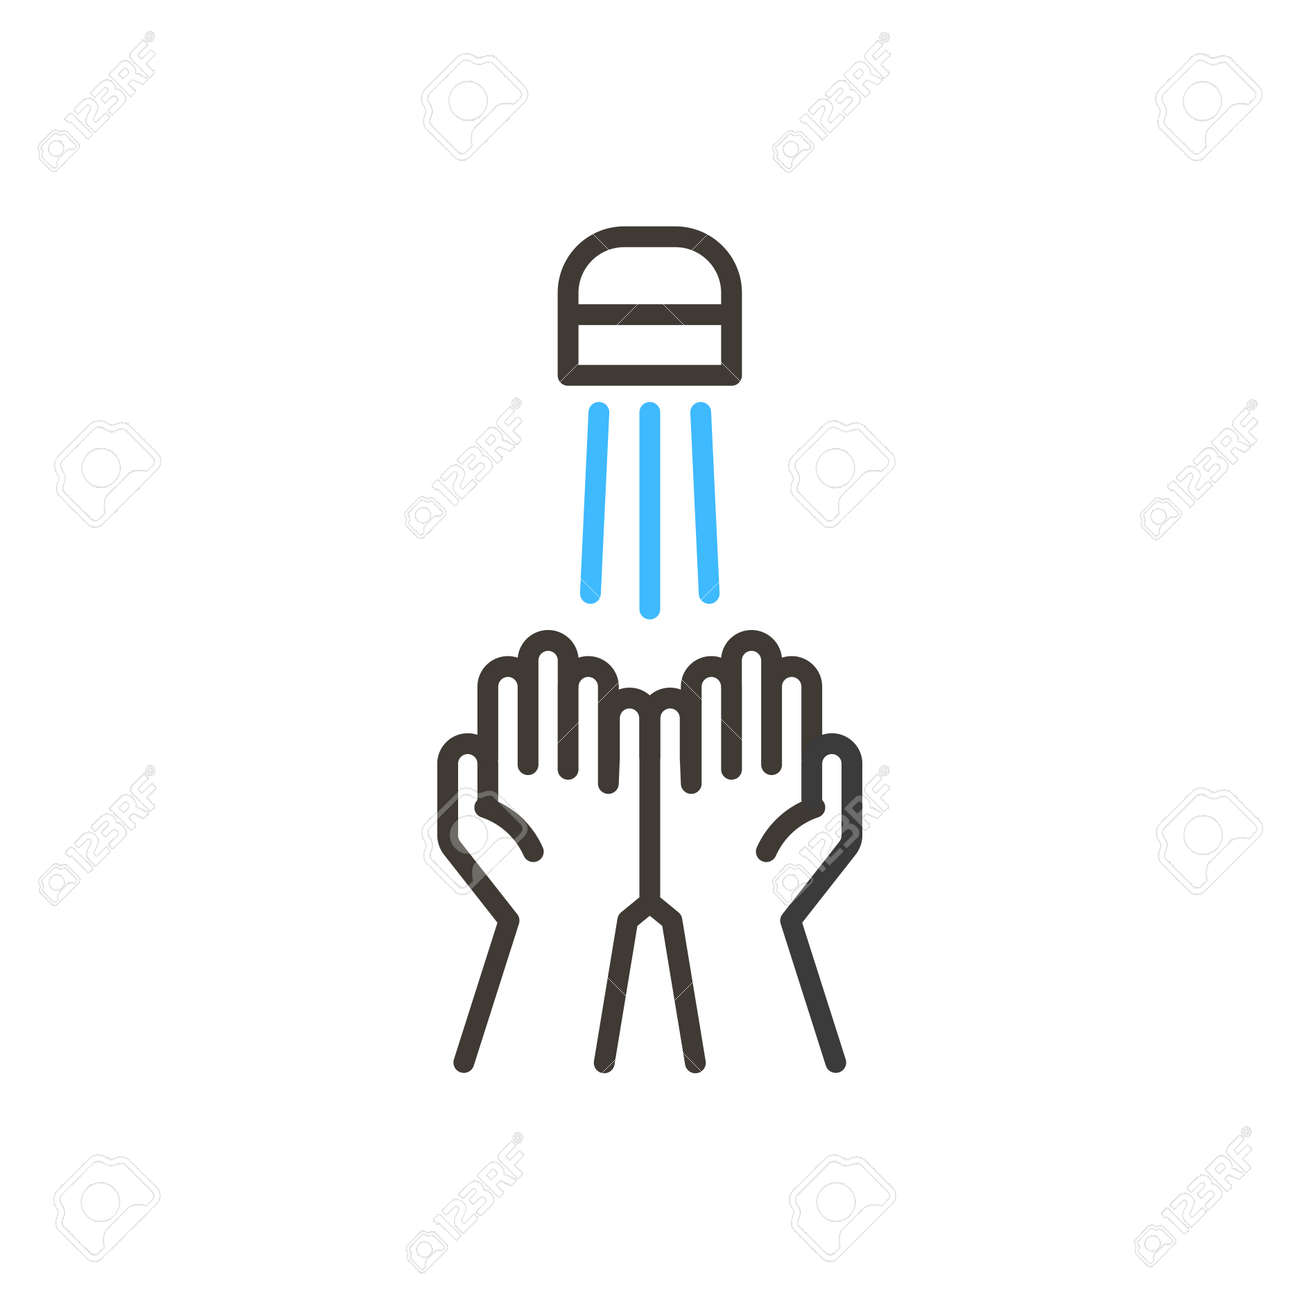 Coronavirus covid-19 prevention hand washing illustration. Vector thin line icon with hands sanitizing with water and soap. Simple design for antibacterial and protection from infection awareness - 158456314